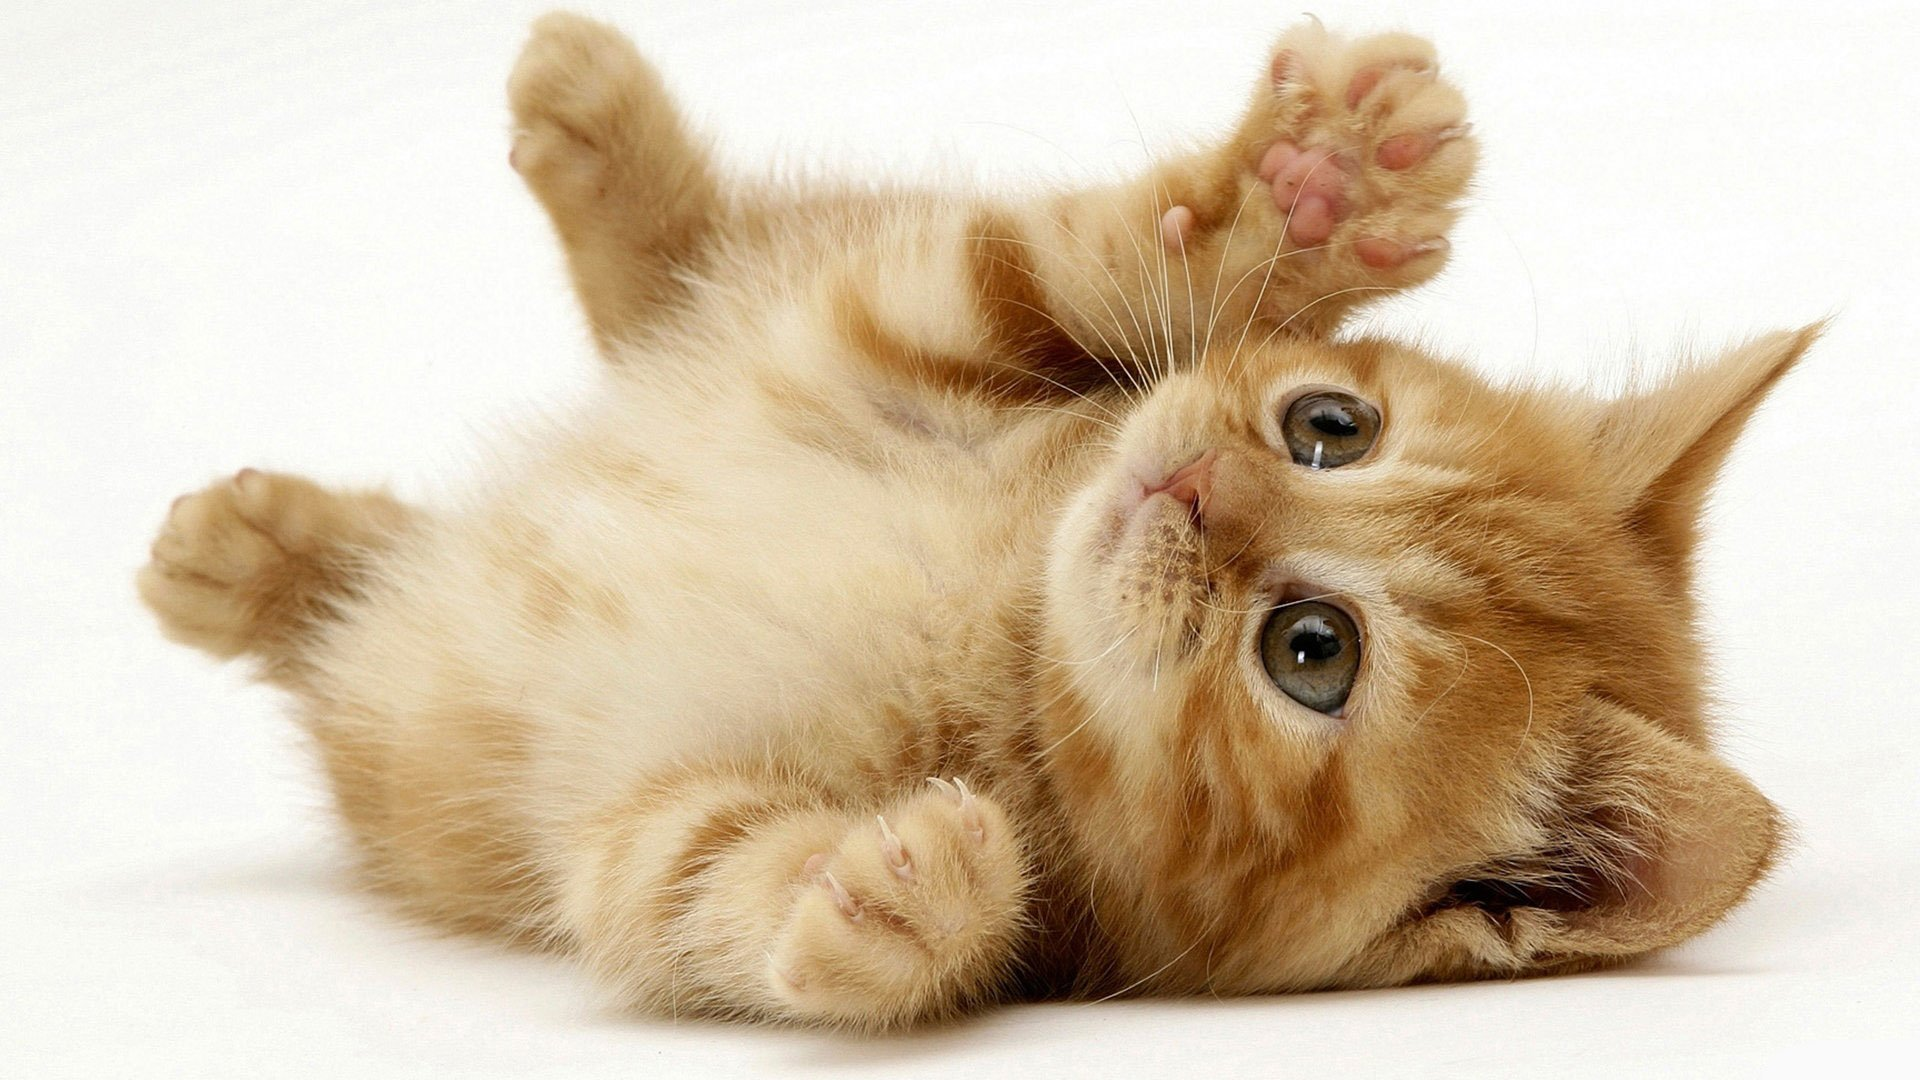 cute cats wallpaper 2 filesize x1024 wallpaper backgrounds 1280 1024 1920x1080